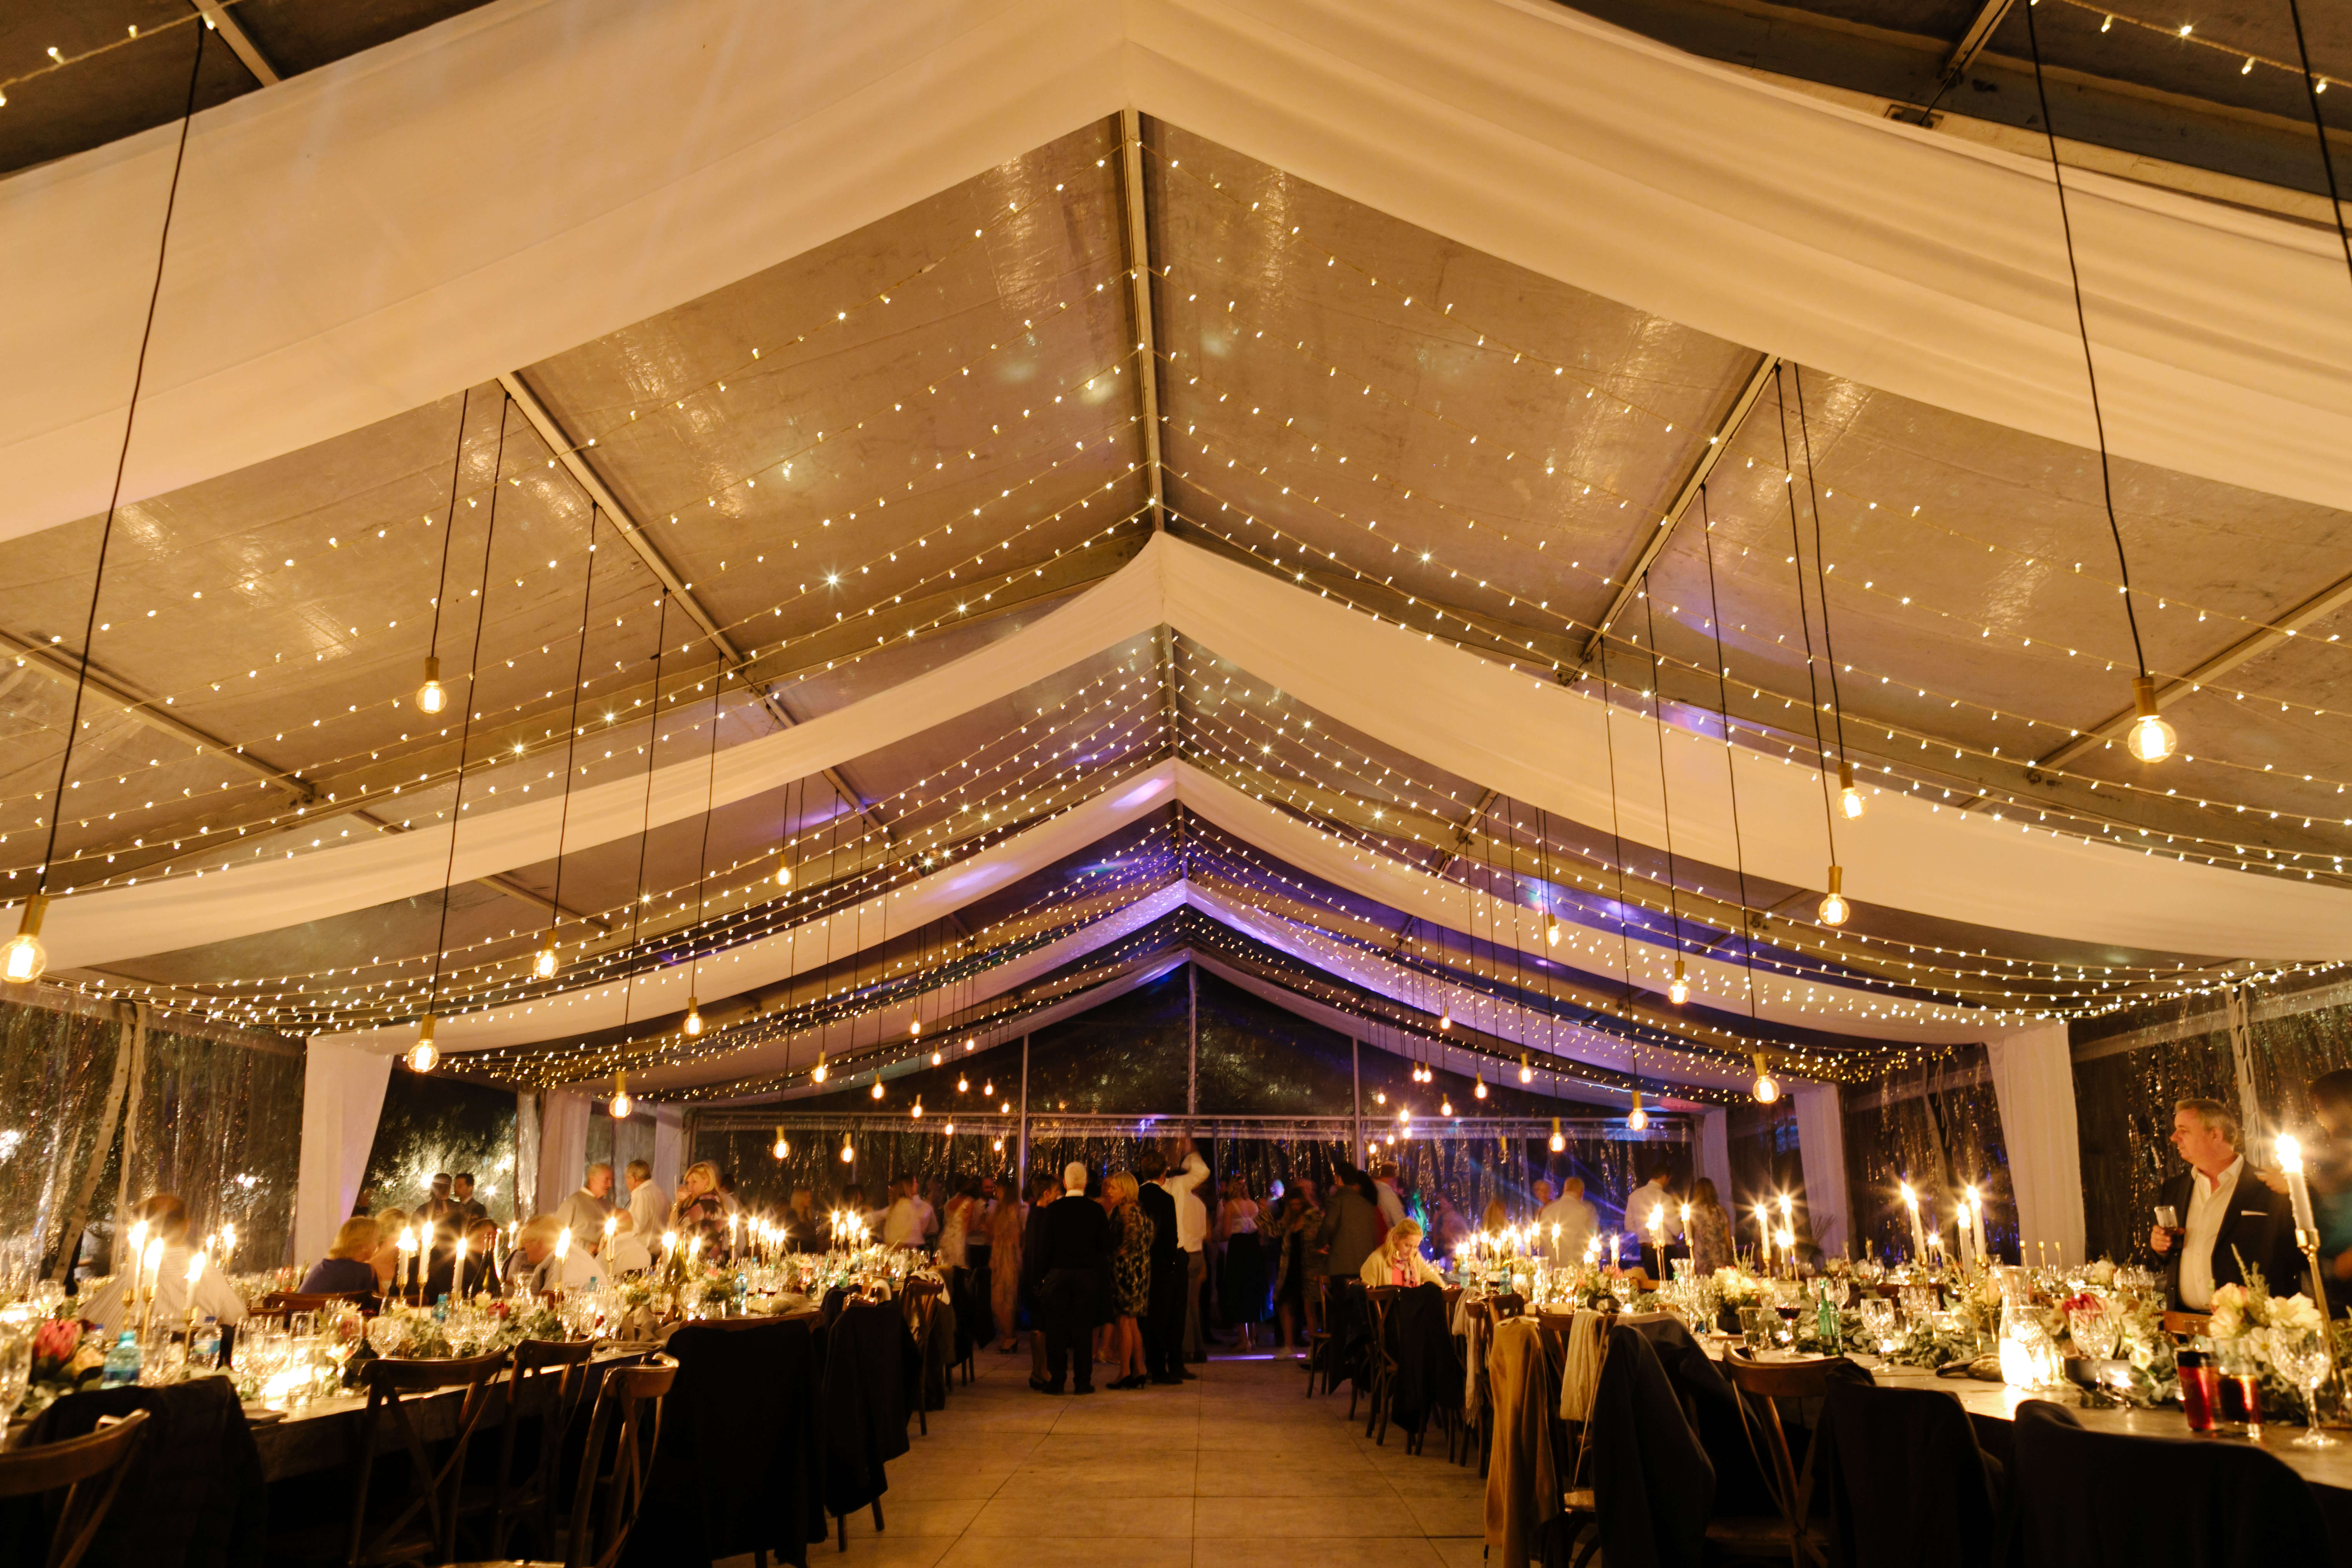 An exquisite wedding venue filled with great people.